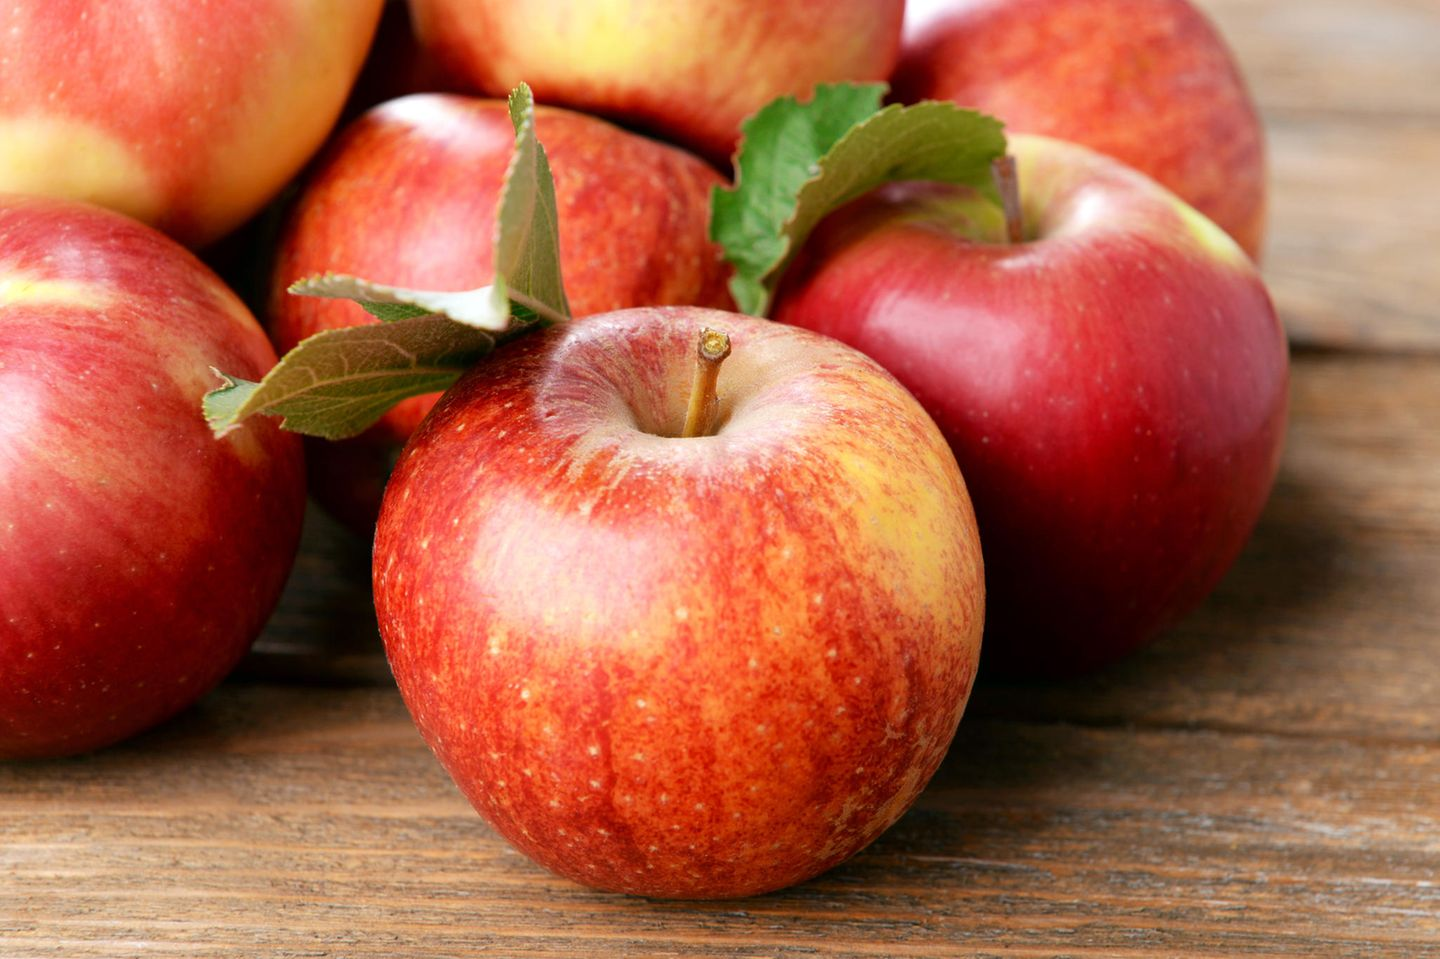 An apple a day keeps the doctor away: Rote Äpfel auf Tisch